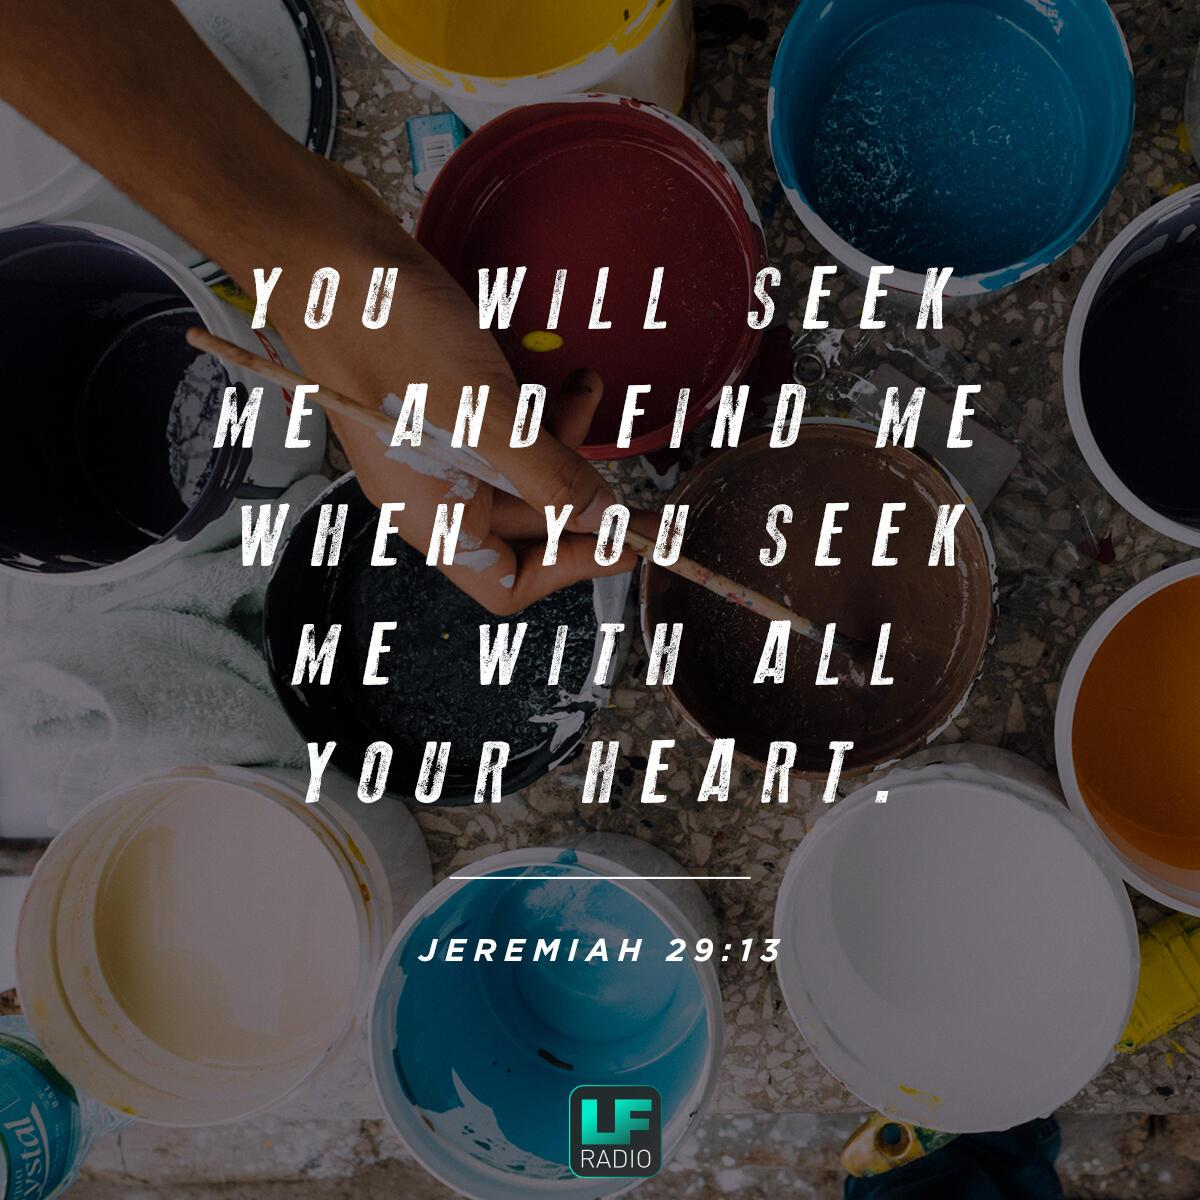 Jeremiah 29:13 - Verse of the Day